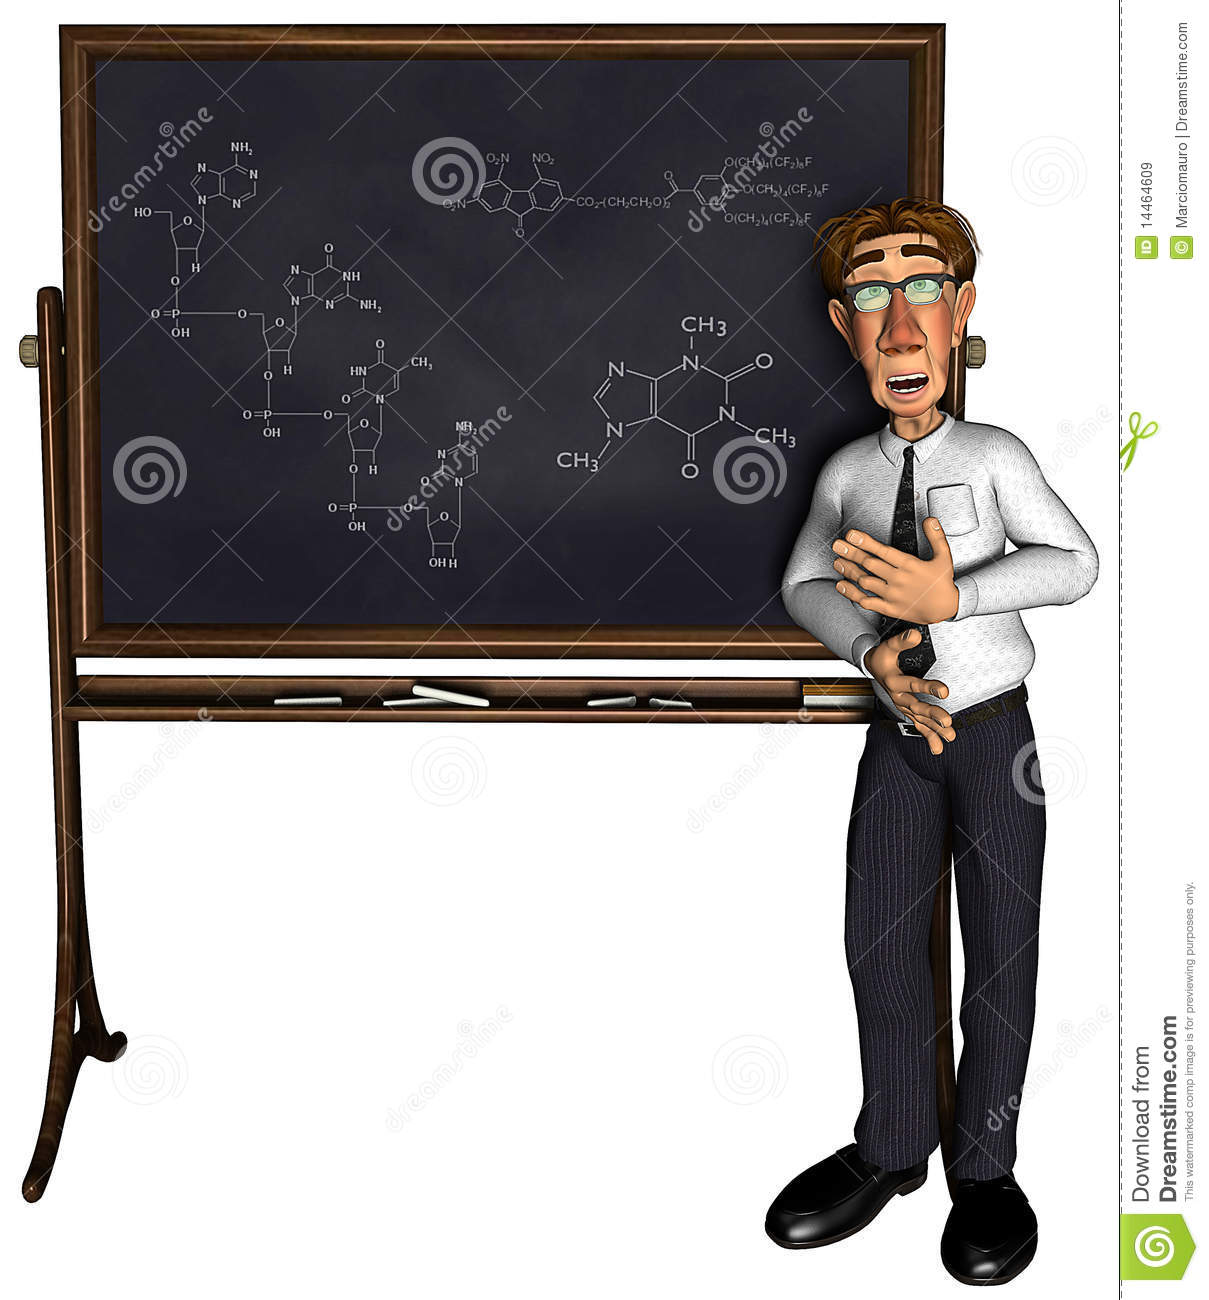 Royalty Free Stock Images 3d Teacher Teaching 3 Cartoon Image14464609 likewise Stock Image Best Project Image26253071 together with Royalty Free Stock Photography Electrical Card Meter Topping Up Pay As You Go Mains Electric Digital Prepaid Credit Image33401367 moreover 2d together with The Etsy Shop. on 2d design projects